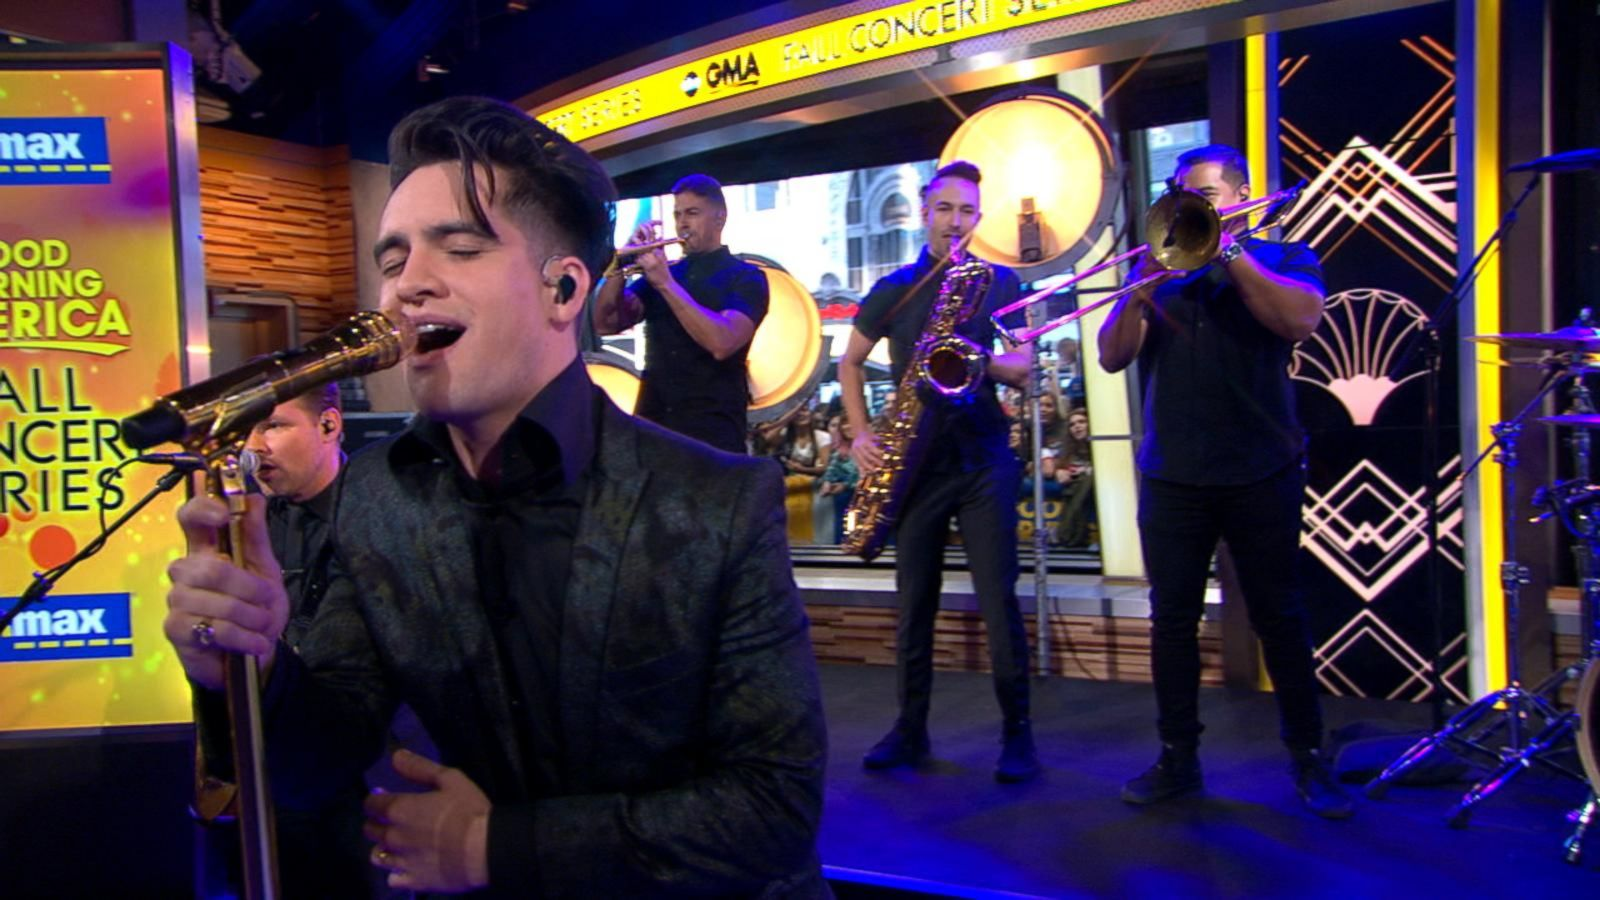 VIDEO: Panic! at the Disco Performs 'La Devotee' on 'GMA'